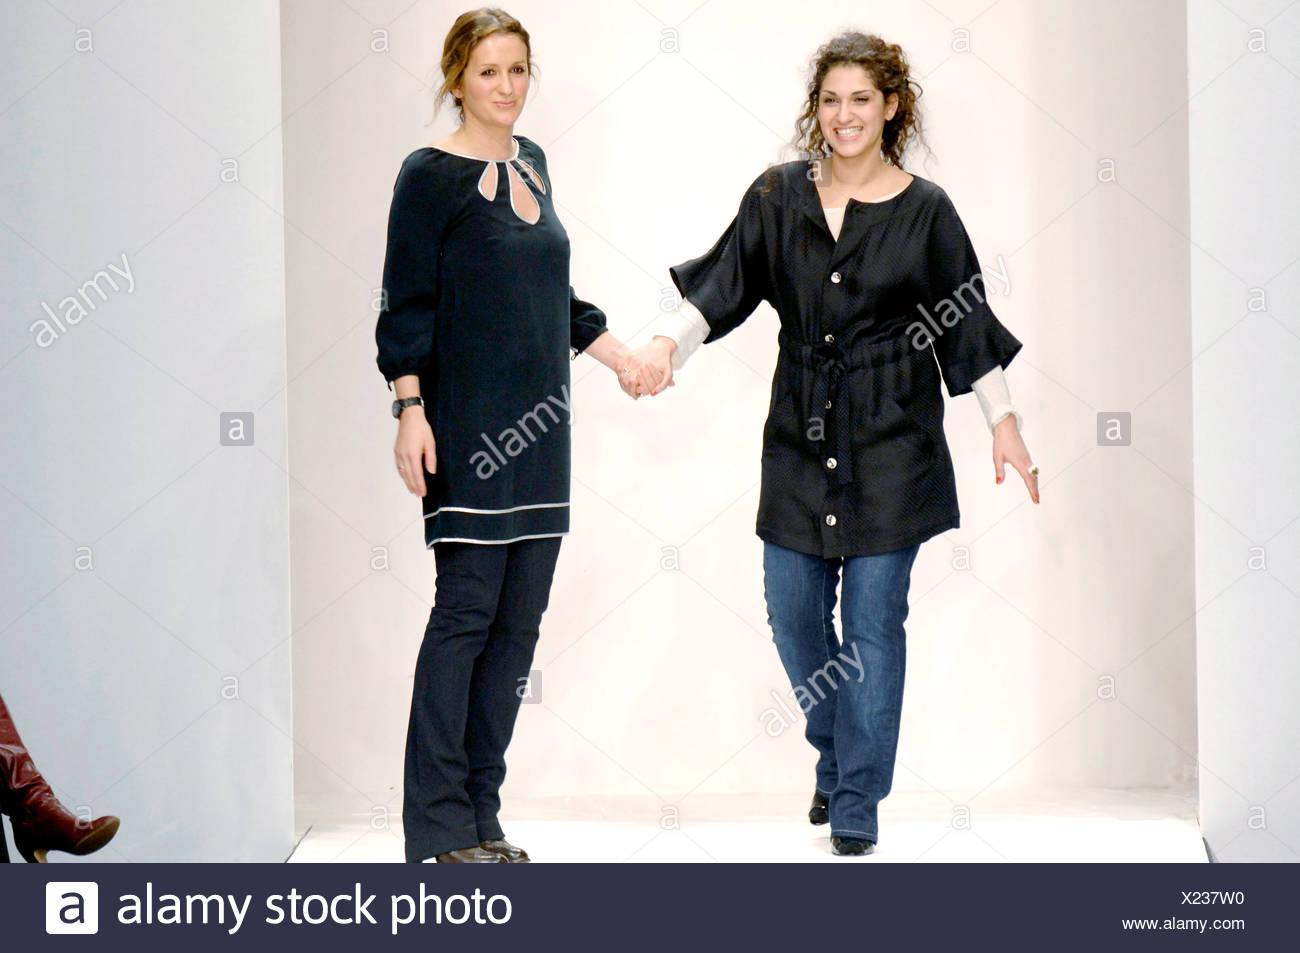 06aeed2cdc Gharani Strok London Ready to Wear Autumn Winter Designers Nargess Gharani  and Vanya Strok wearing black tops jeans standing at